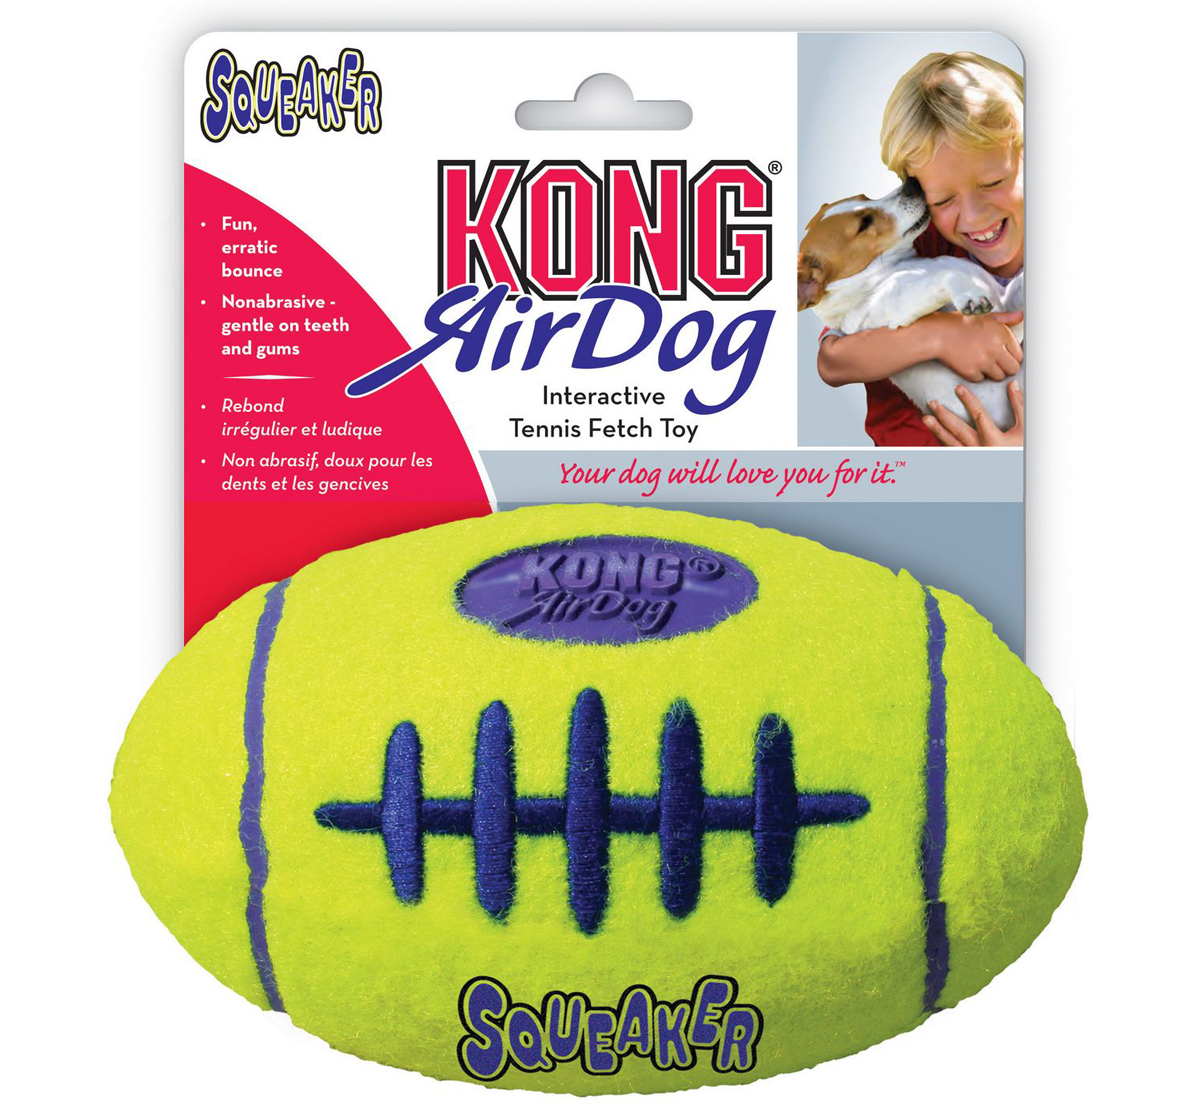 KONG Air Dog Squeaker Football Medium